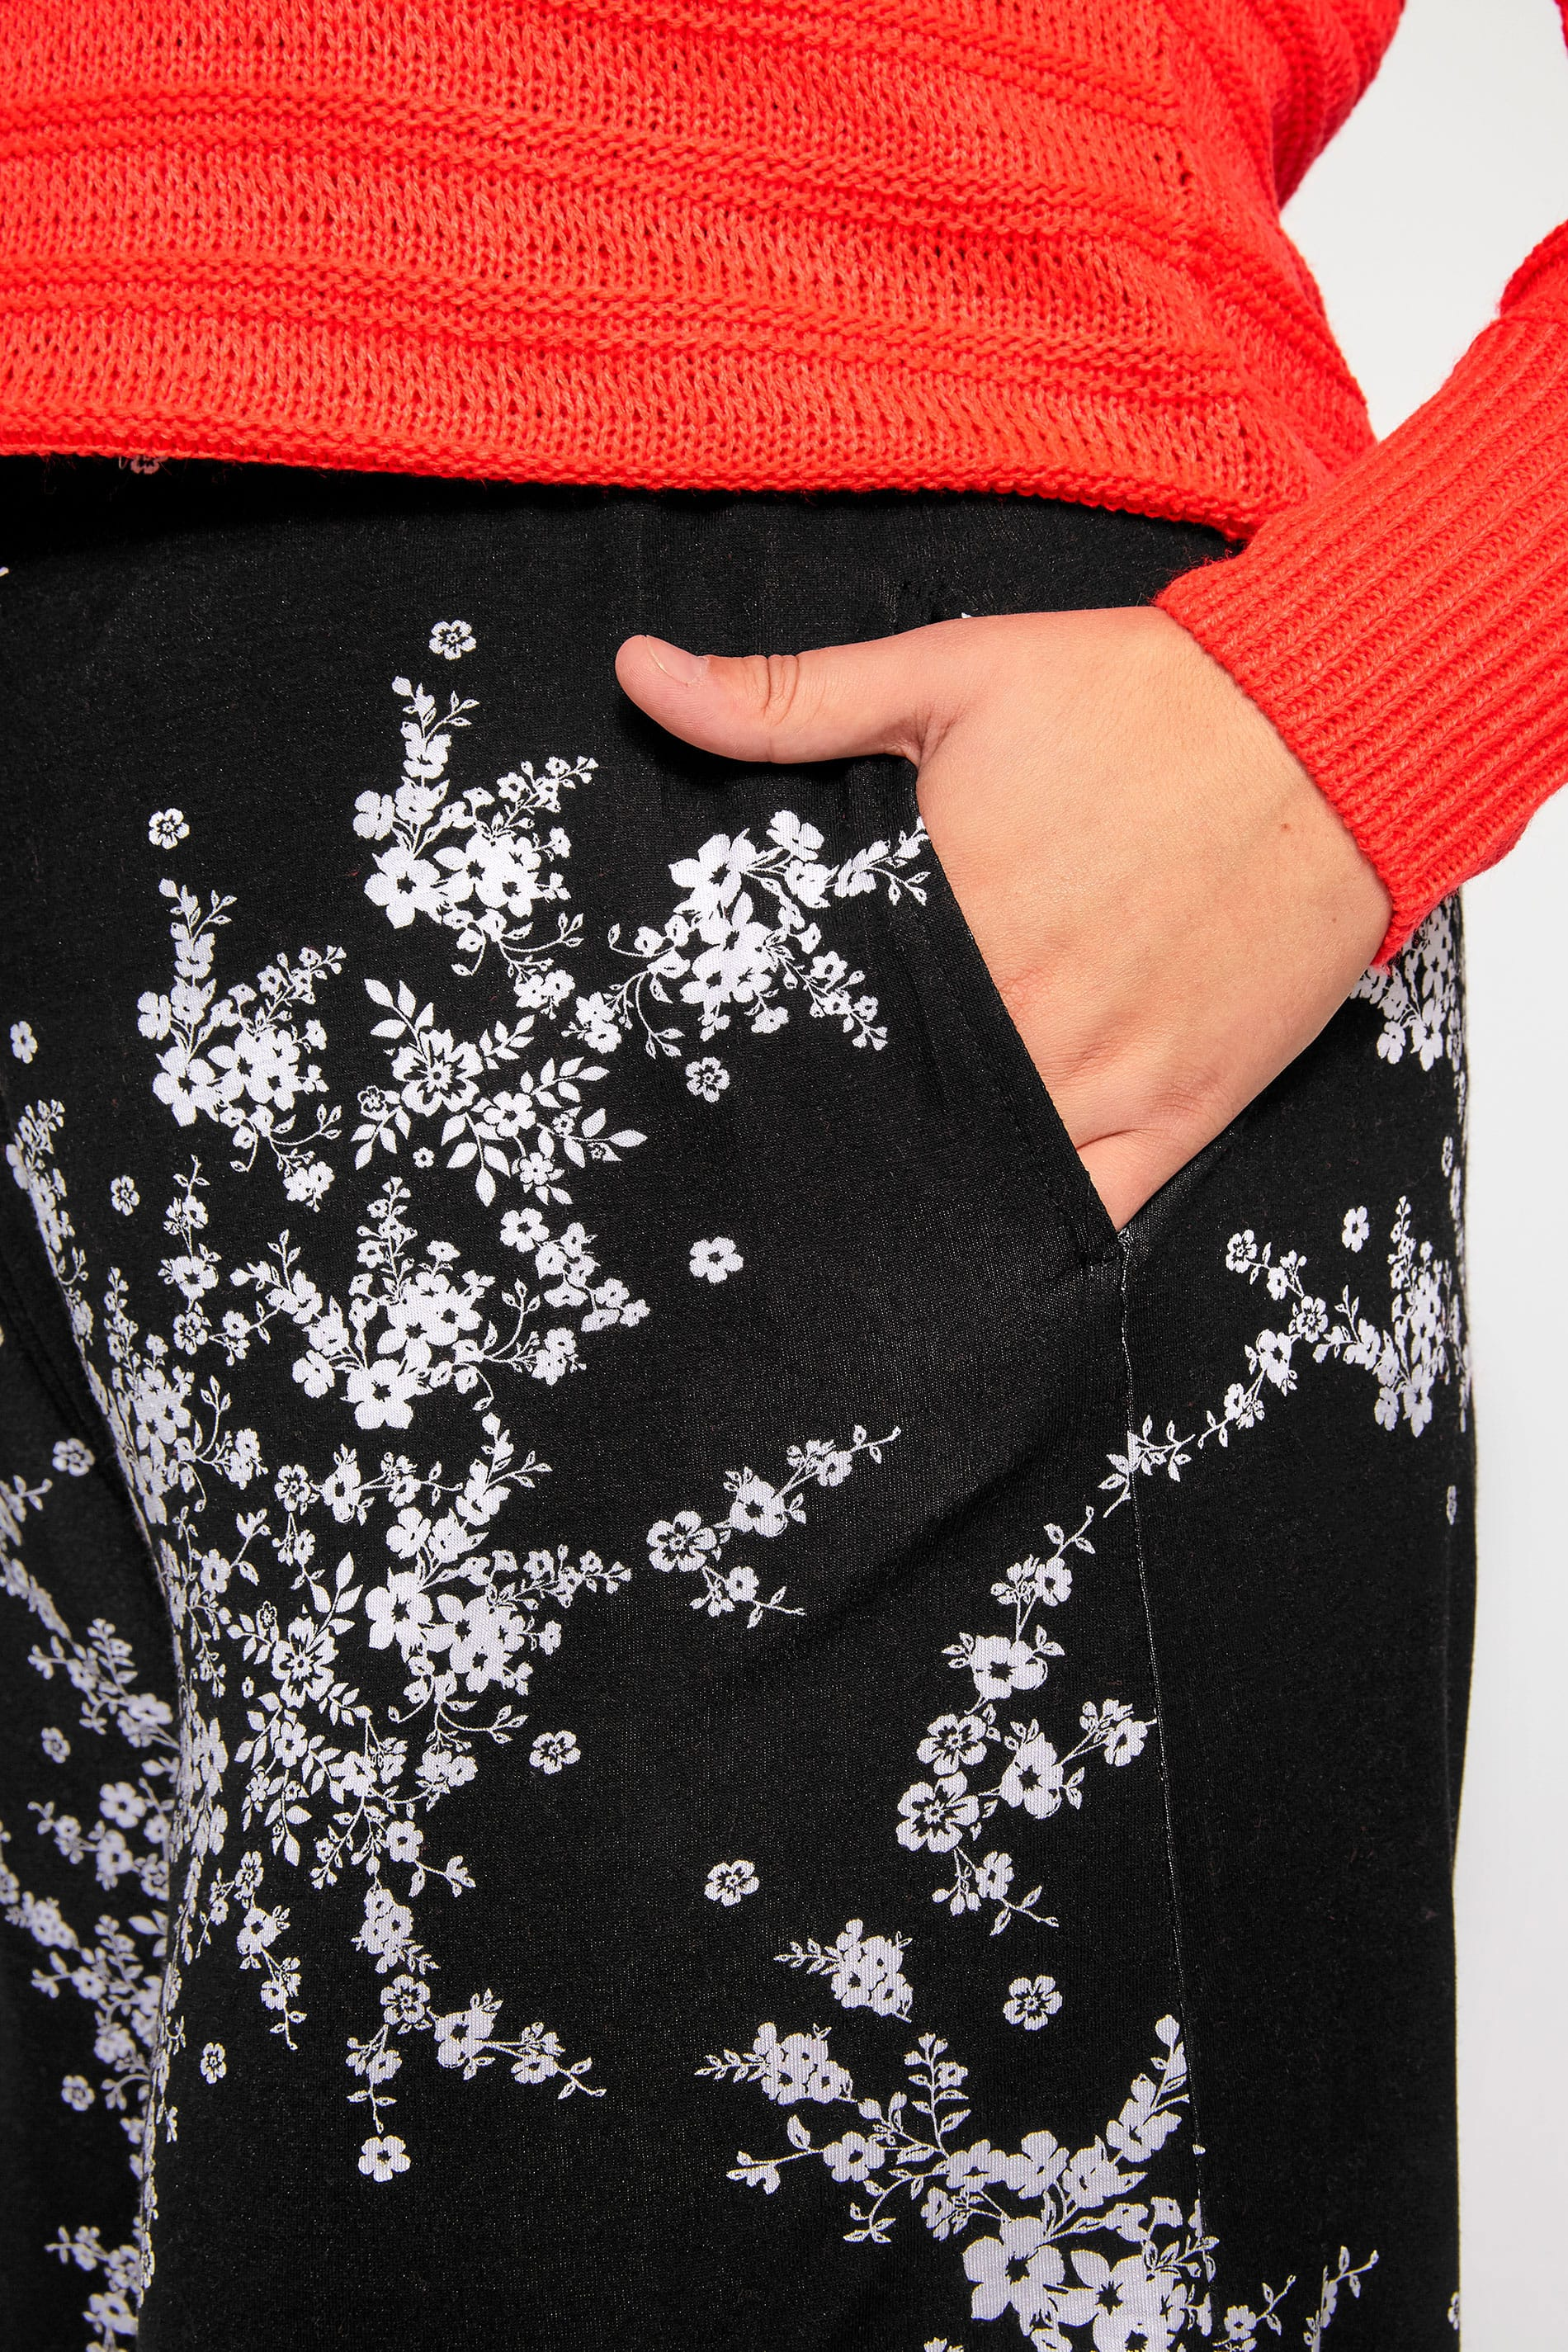 Yours Clothing Women/'s Plus Size Black Floral Jersey Culottes